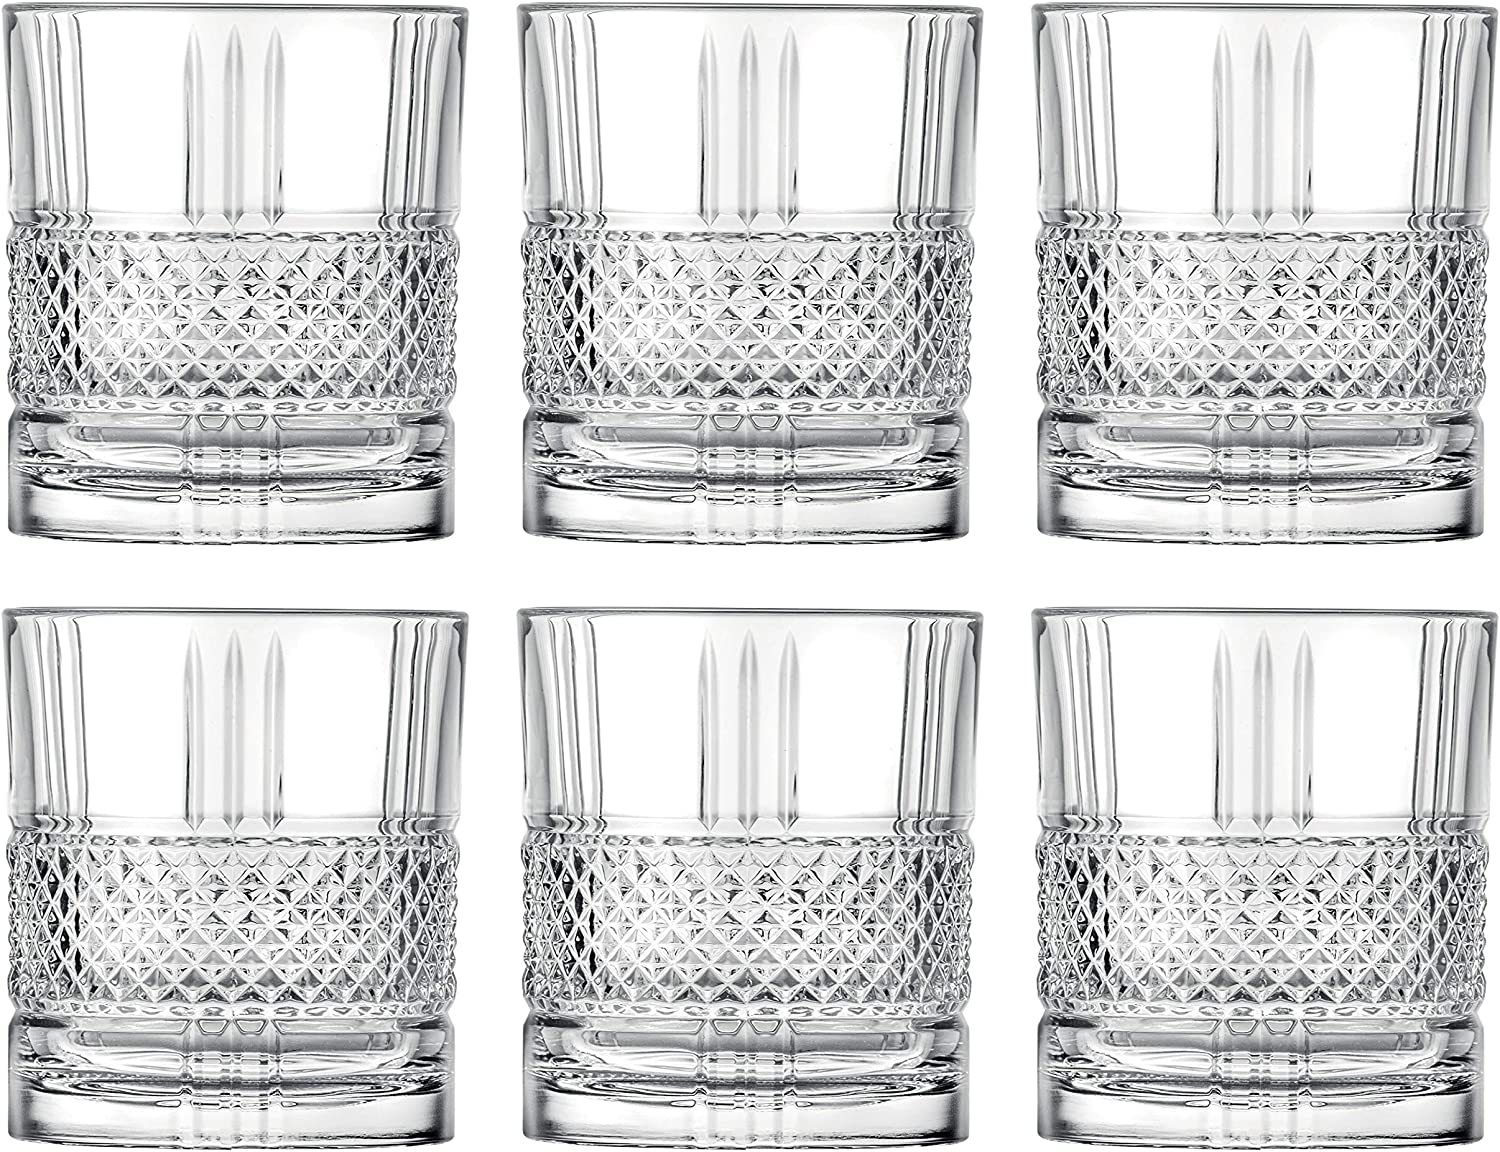 Tumbler Glass - Double Old Fashioned - Set of 6 Glasses - Designed DOF tumblers - For Whiskey - Bourbon - Water - Beverage - Drinking Glasses - 12 oz. - Lead Free Crystal - Made in Europe By Barski